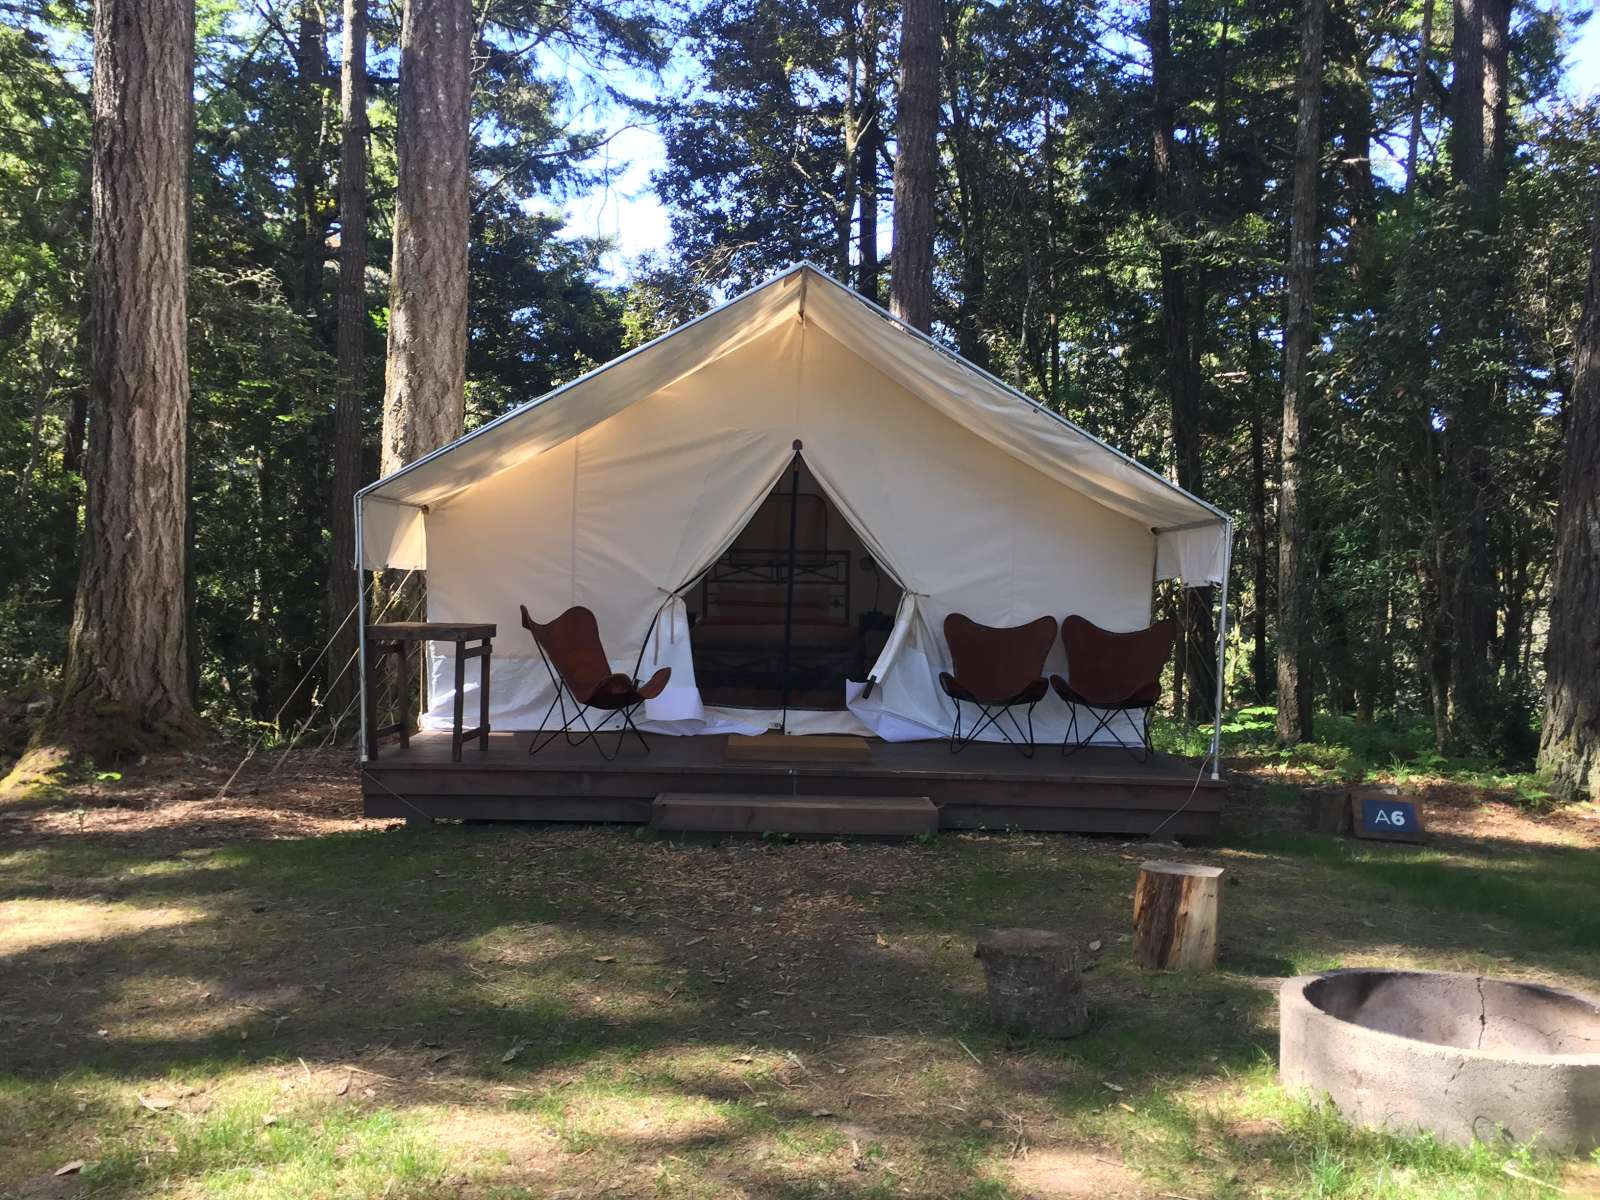 Christine T S Photo At Modern Camping Family Tents